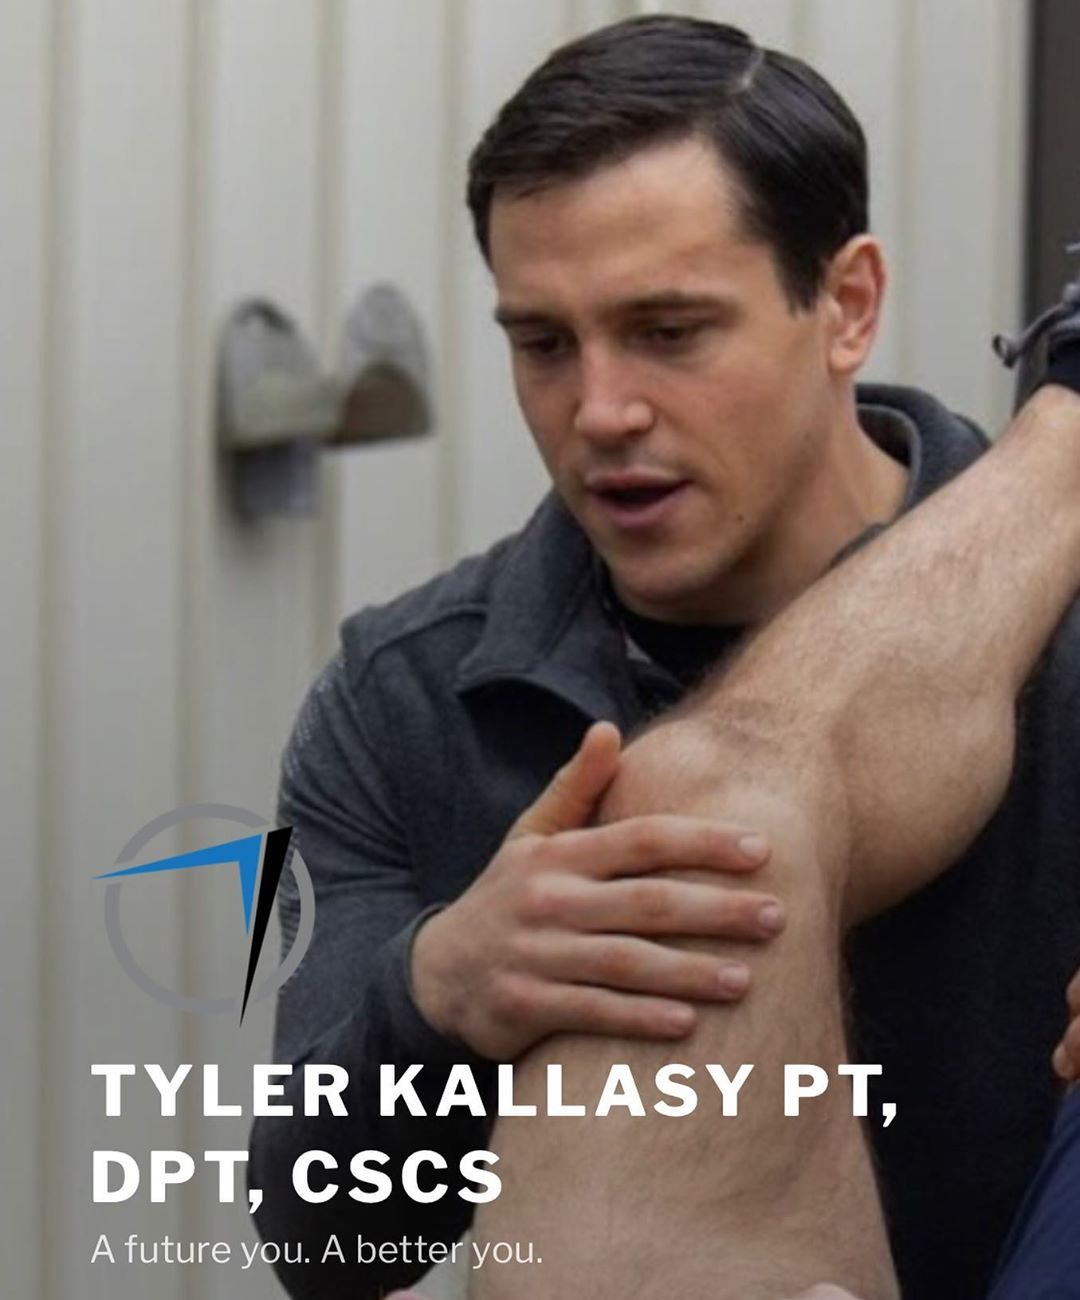 @hidden_alley_crossfit would like to welcome our newest member, and now in house physical therapist, Tyler Kallasy, to the team! @tylerkallasy.dpt will be offering treatment at HAC for those with a need to address movement issues, aches and pains, and all other issues related to movement. As a PT, strength and conditioning specialist, and a L-1 CrossFit coach, Tyler understands your desire to move better, and to feel better. His goal is to close the gap between fitness and traditional physical therapy, and he's taking an active stance to make sure the two coincide together to create stronger human beings. For those of you looking for treatment, give @tylerkallasy.dpt a follow, and DM him to inquire. You can also visit his website: prospect-PT.com to learn more about this rad individual. For members, you can find tyler training at 5am, and in the evenings throughout the week